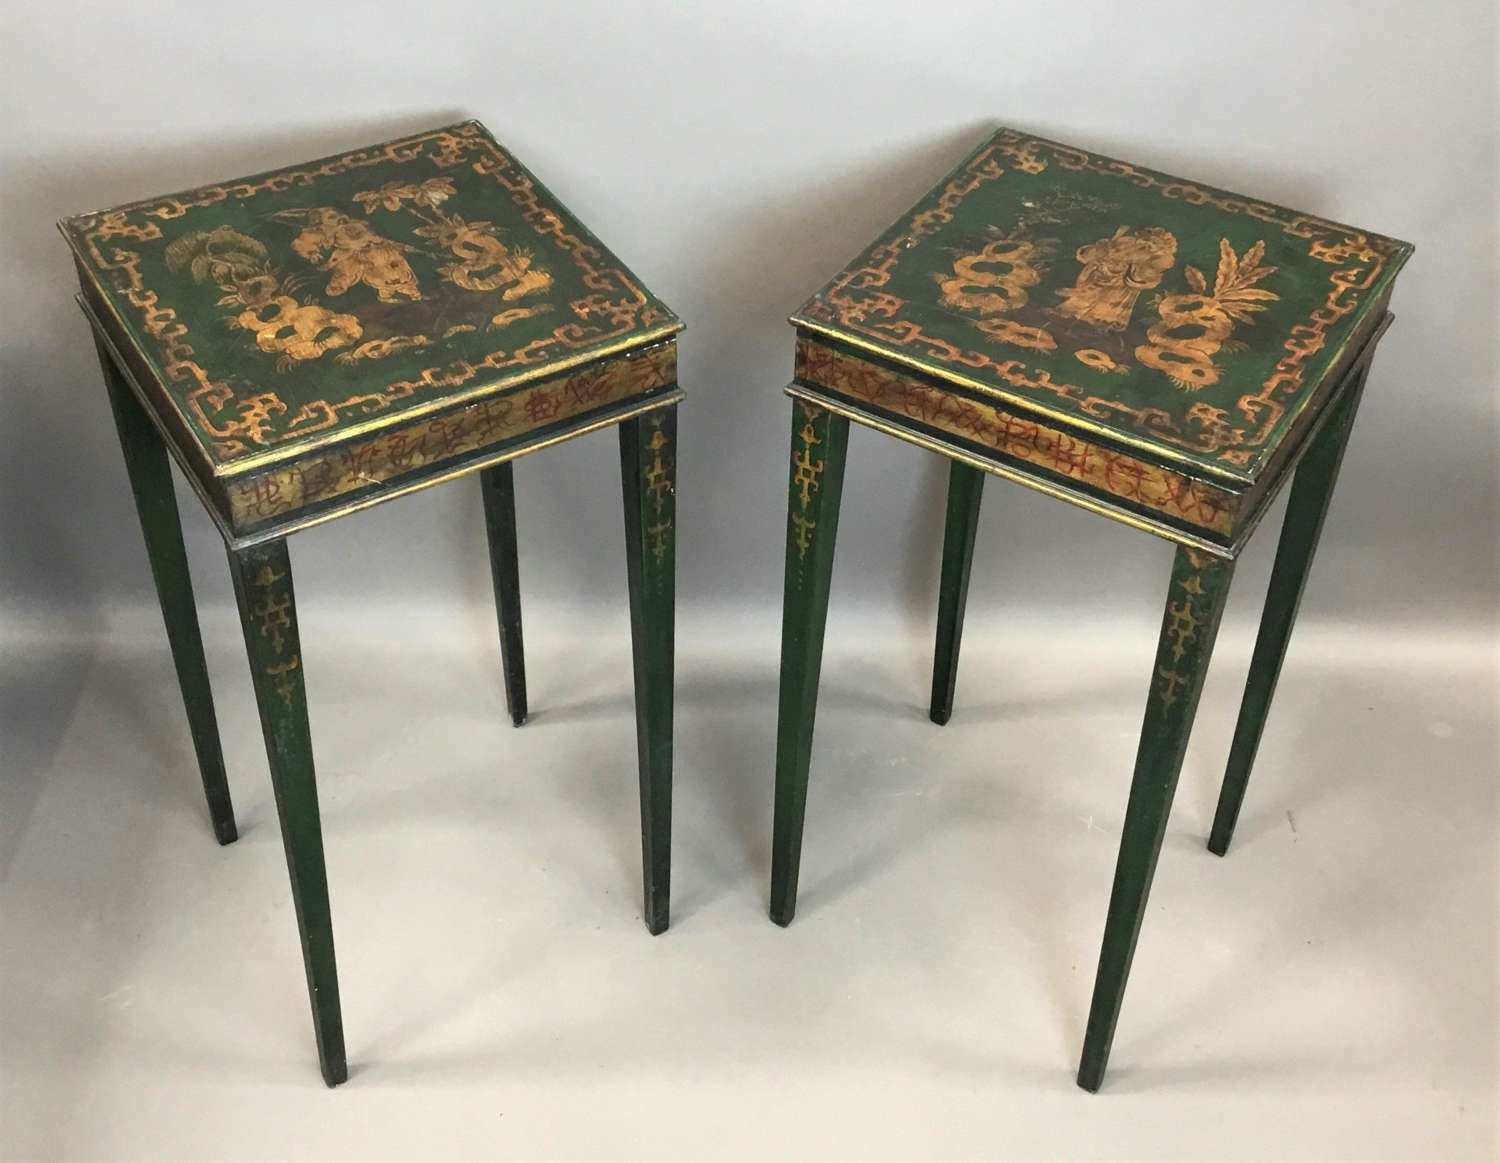 C19th pair of Chinoiserie painted occasional tables